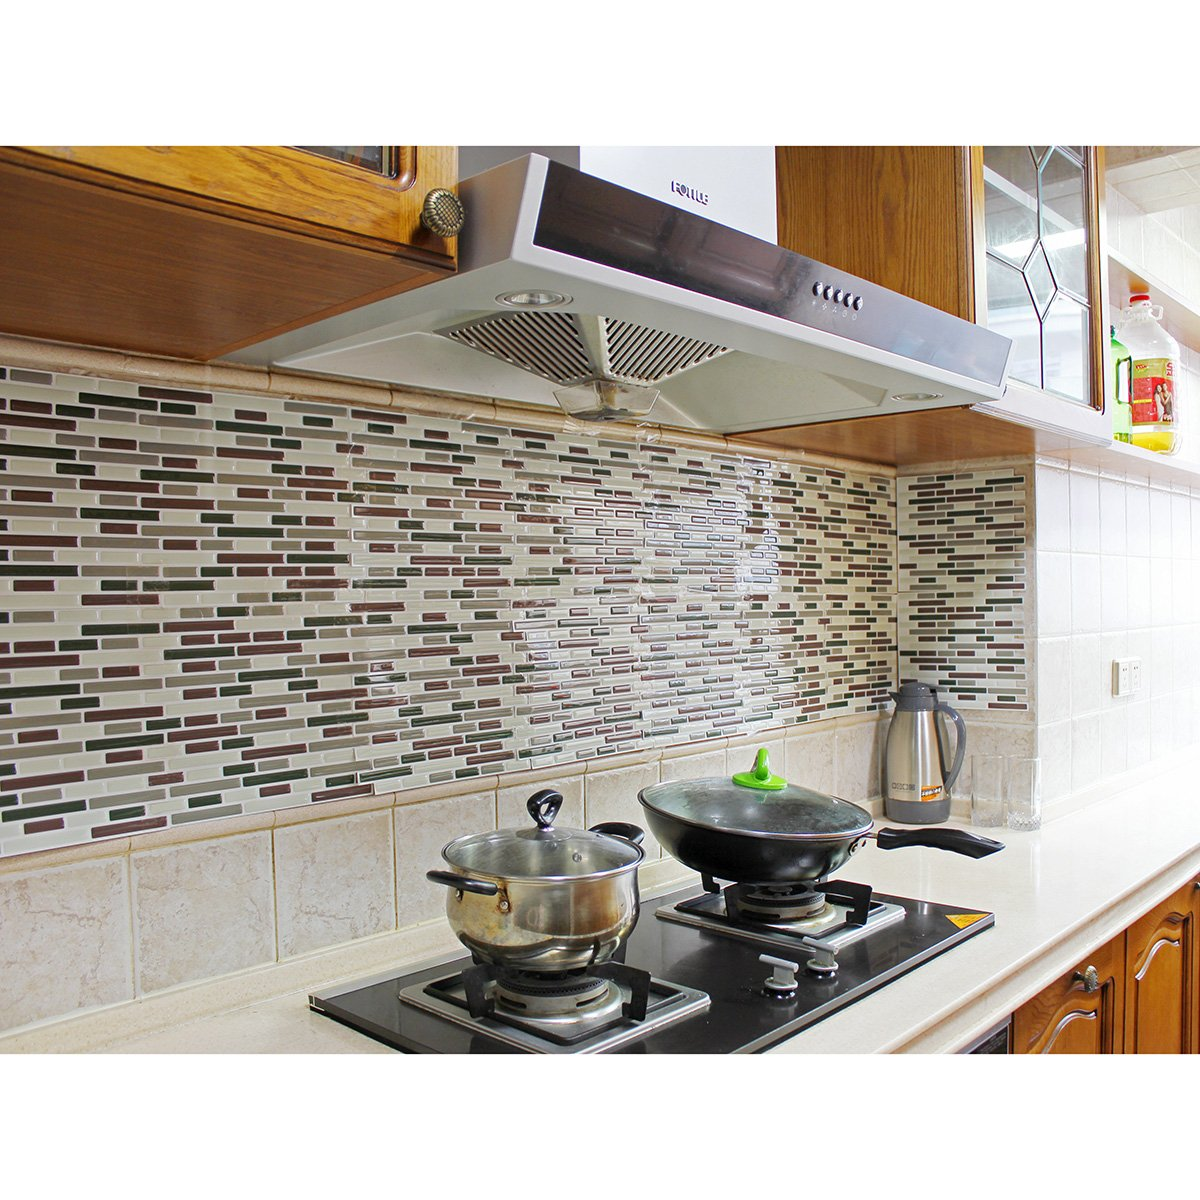 - Fancy-fix Vinyl Self Adhesive Multicolor Mesh-Mounted Mosaic Kitchen  Backsplash Wall Tile Sticker-Pack Of 2 Sheets 11.4 Inches By 9.25 Inches:  Amazon.in: Home & Kitchen